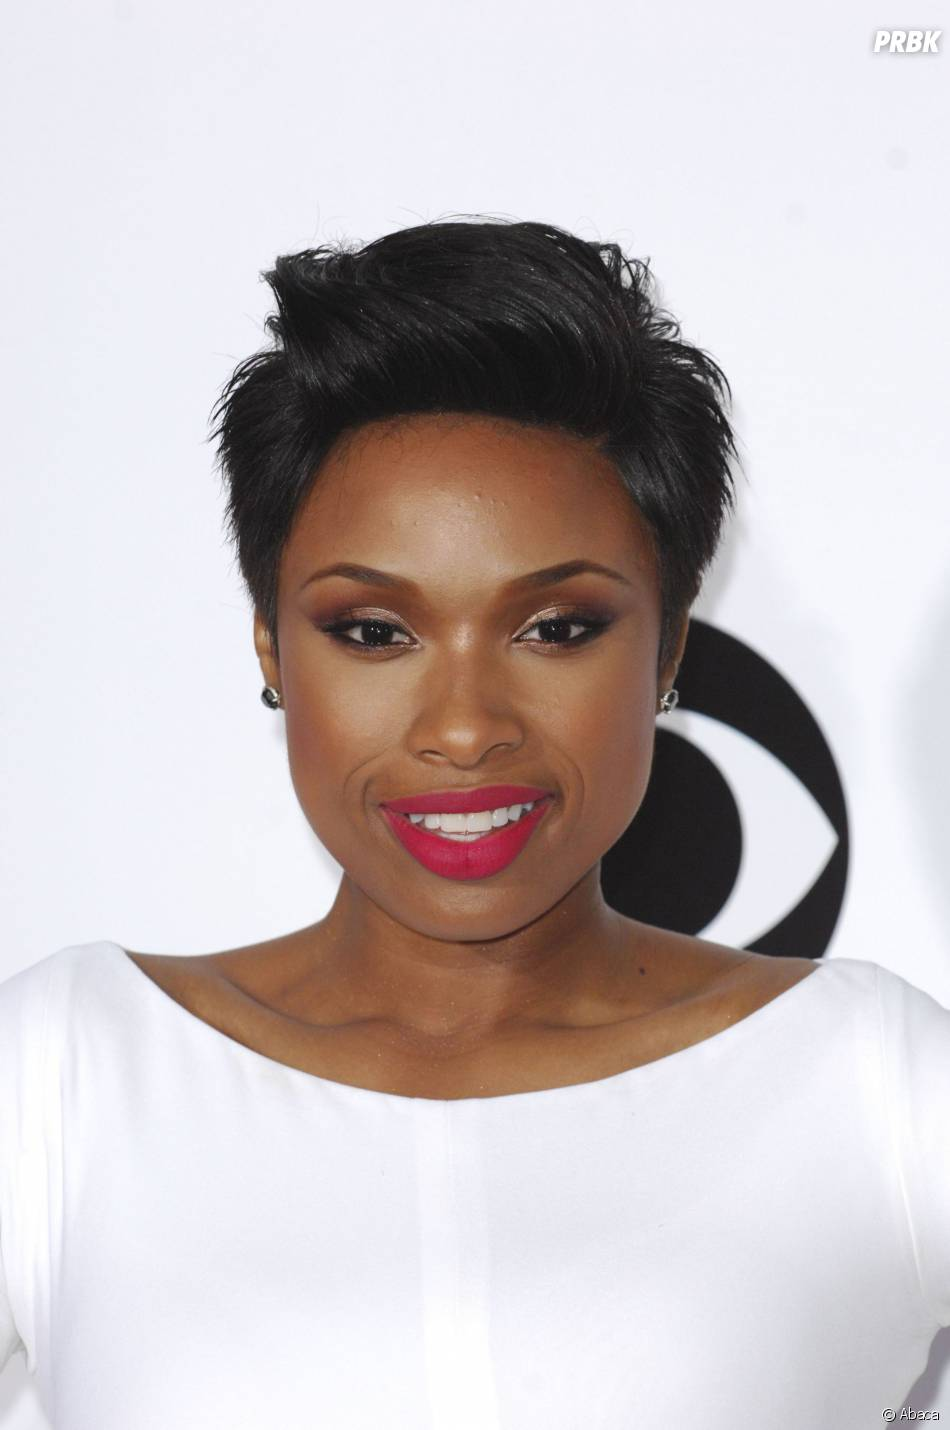 People's Choice Awards 2014 : Jennifer Hudson gagnante du prix humanitaire